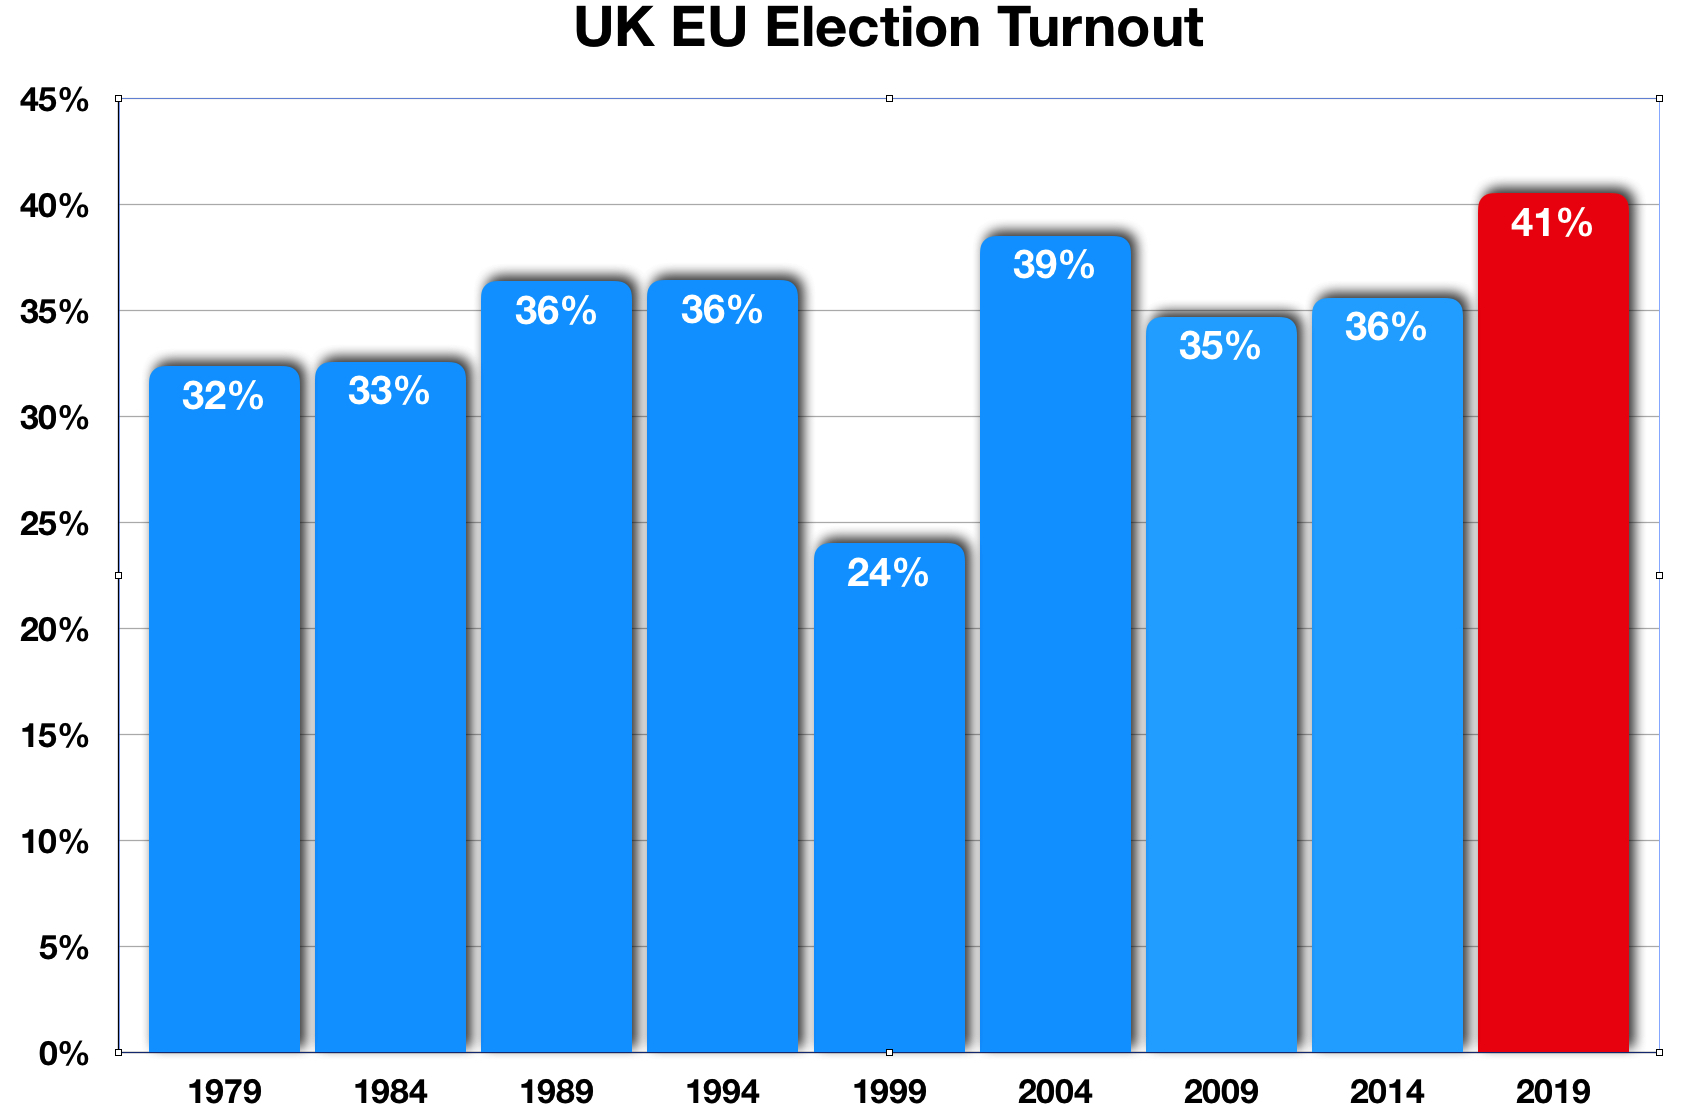 UK EU Election Turnout to 2019